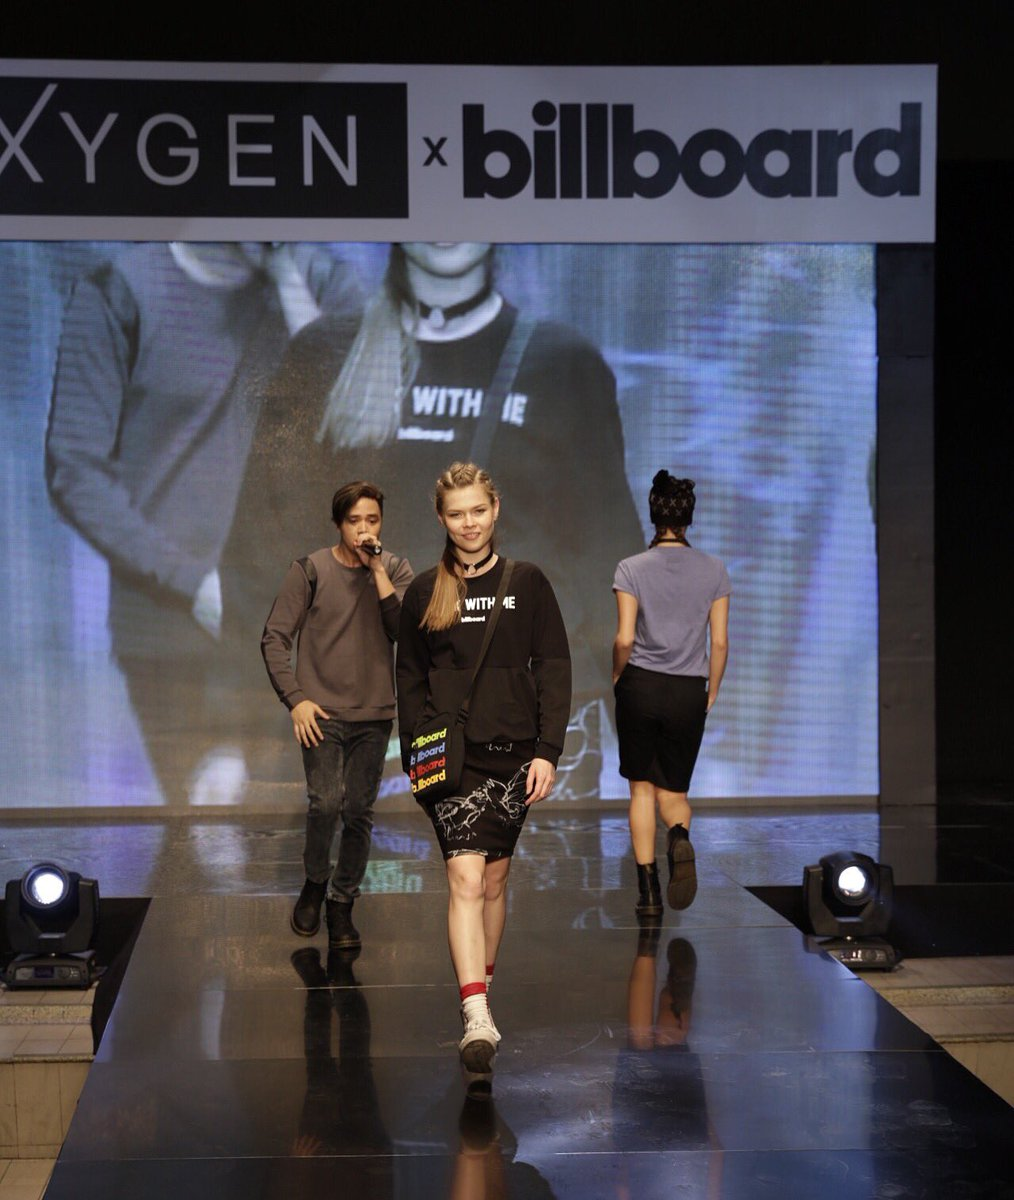 Rockin' our #OXYGENxBILLBOARD style! What's your favorite?